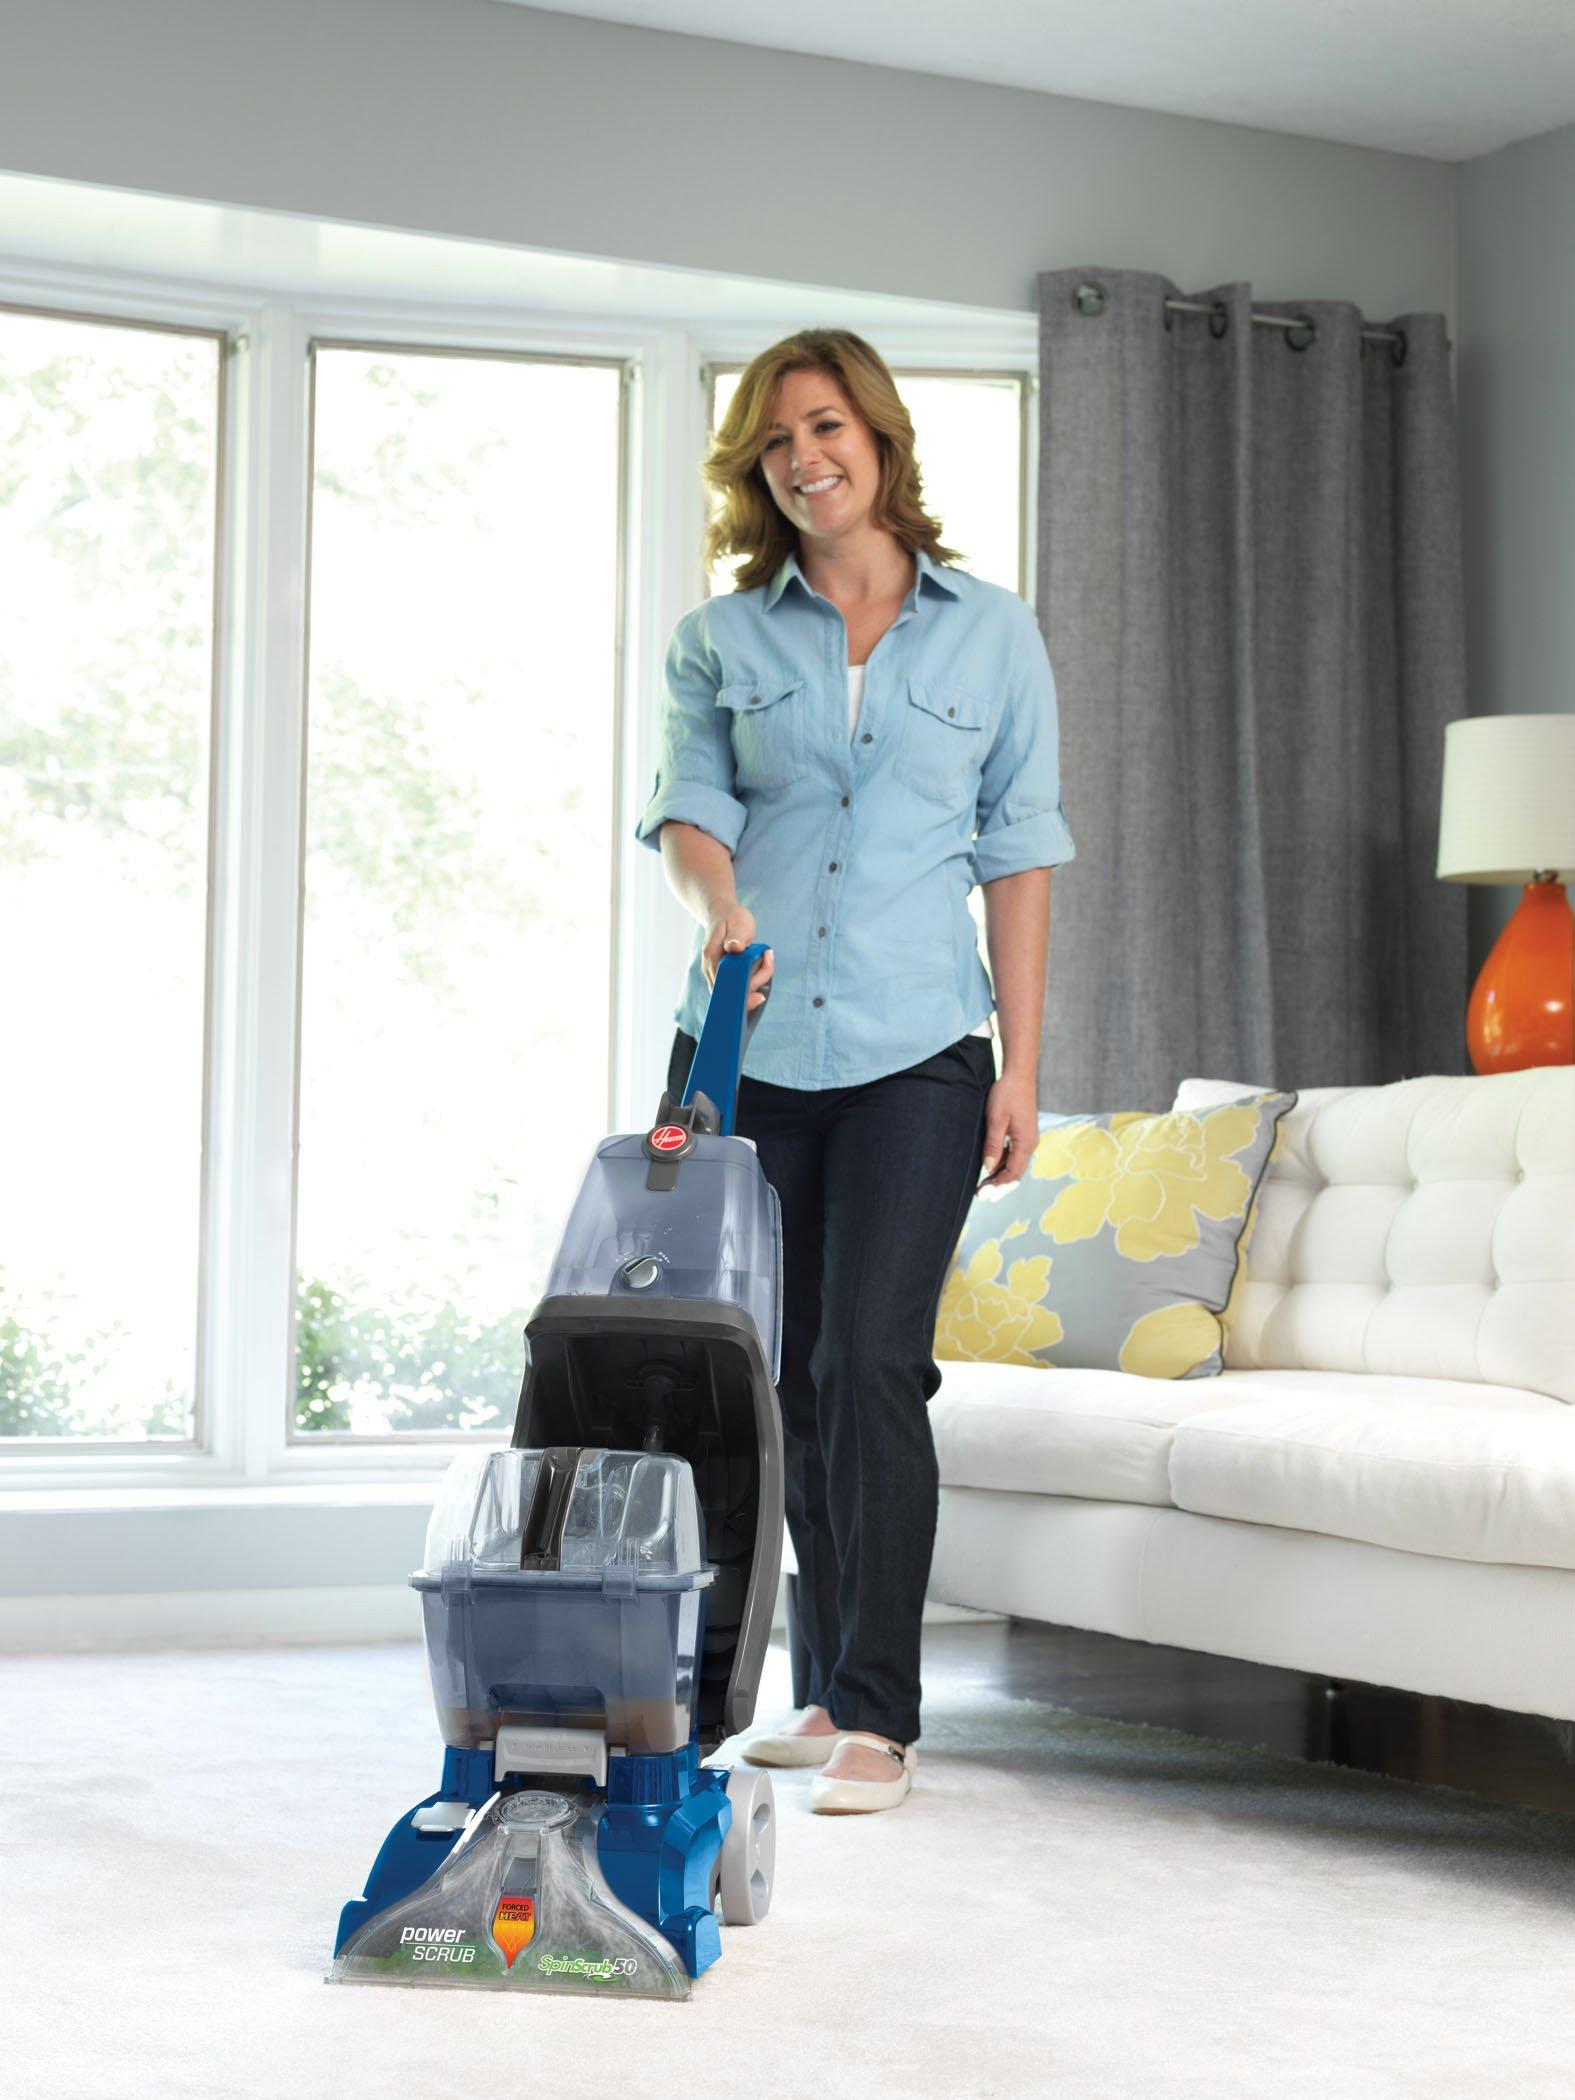 Hoover Fh50141 : hoover, fh50141, Power, Scrub, Deluxe, Carpet, Cleaner, Hoover